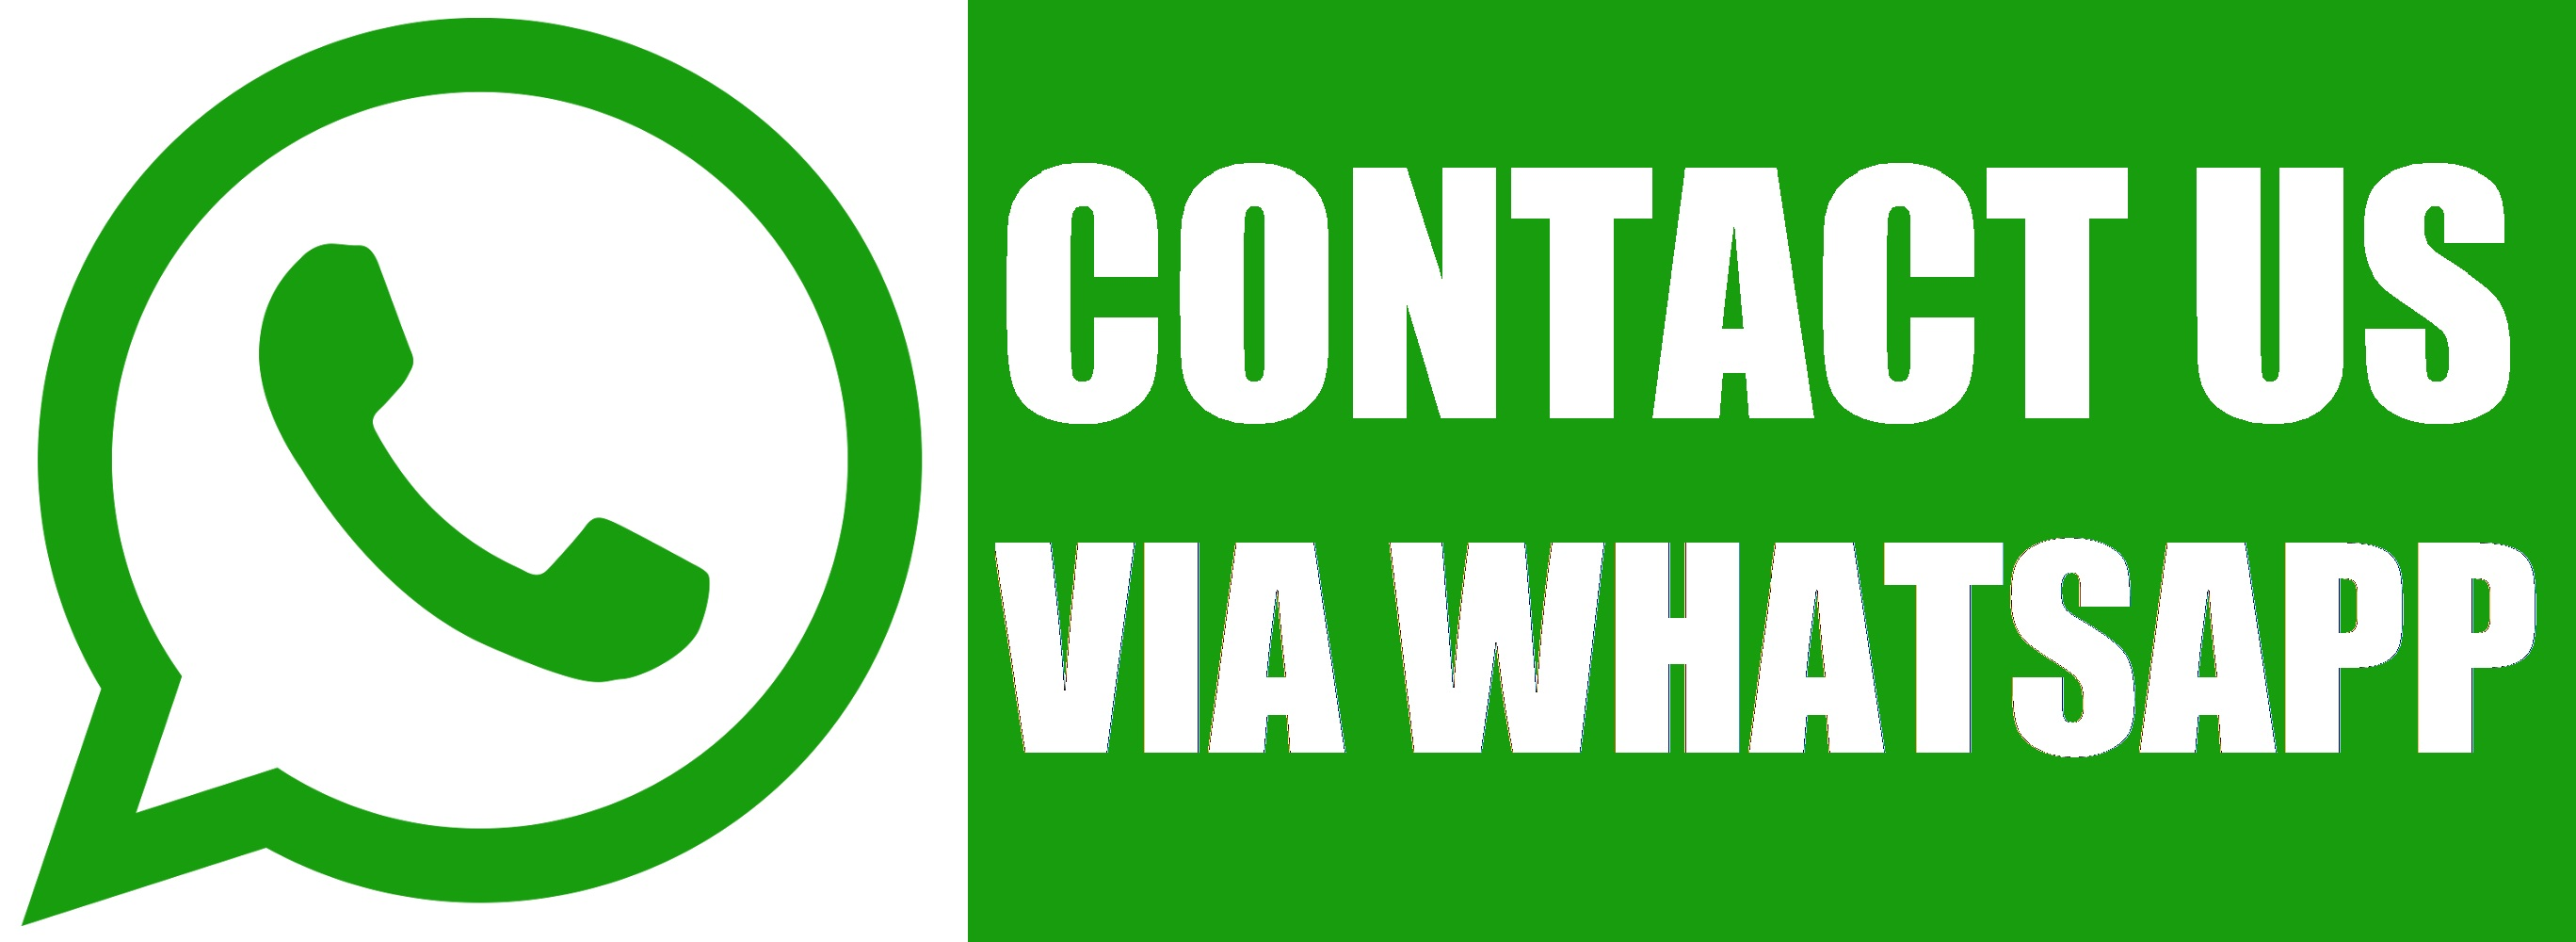 contact-whatsapp